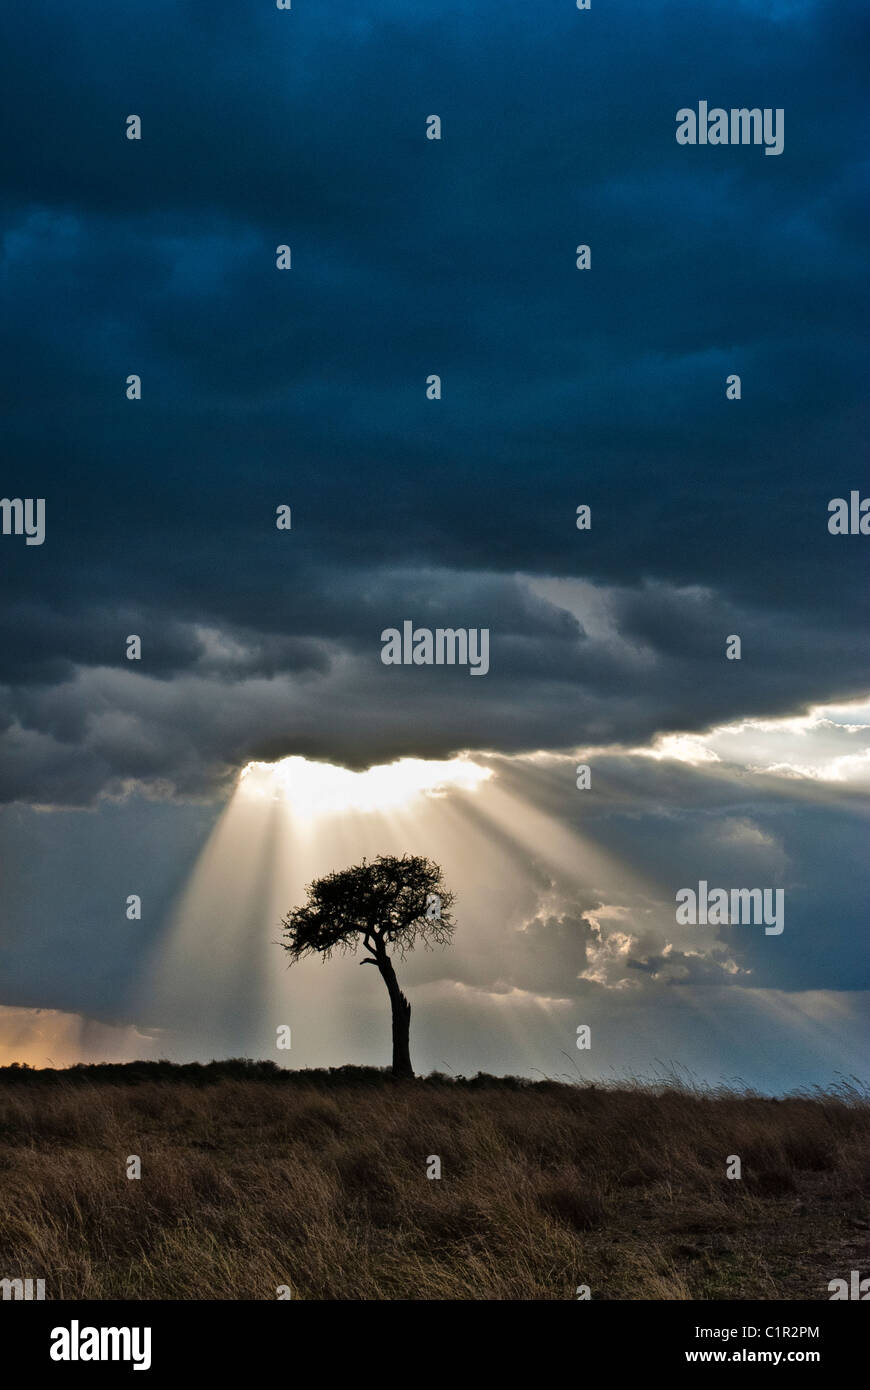 Lone Acacia Tree, Storm and Sunbeams, Masai Mara National Reserve, Kenya, Africa - Stock Image